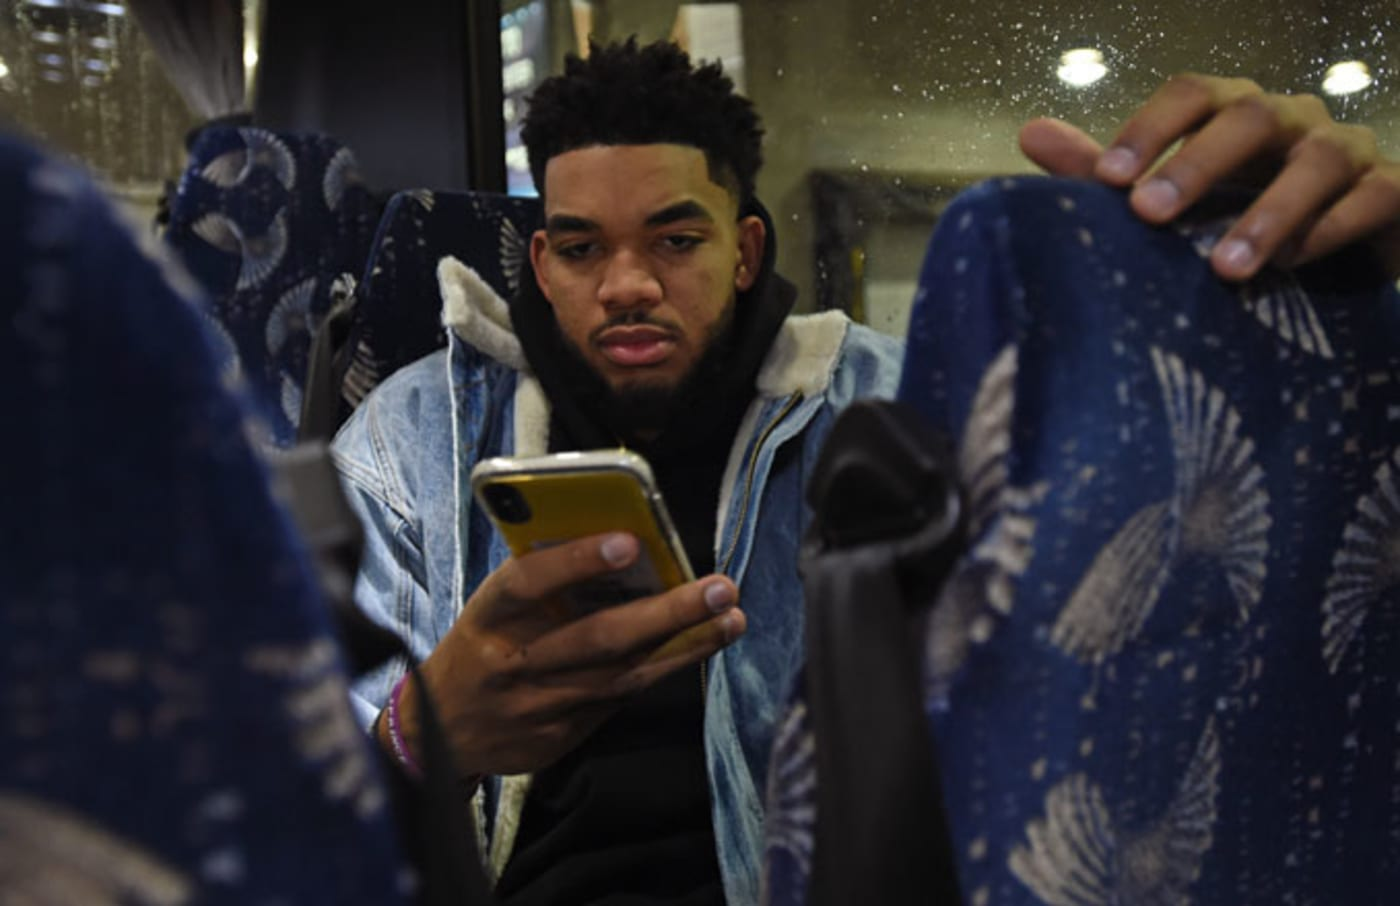 Karl Anthony Towns arrives at the 2019 All Star Game